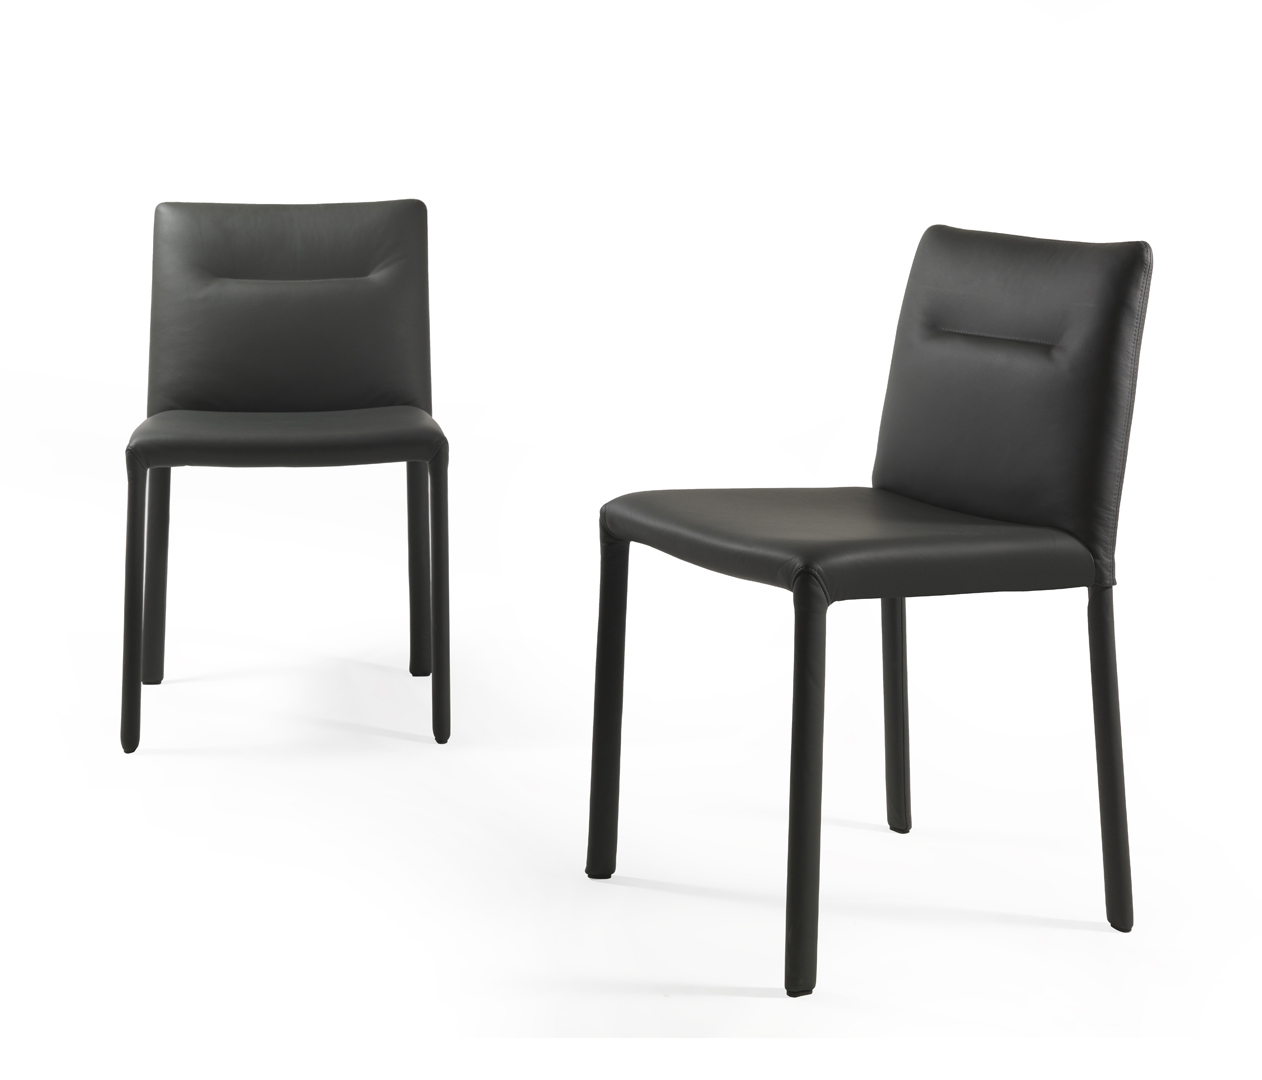 Nuvola Dining Chairs